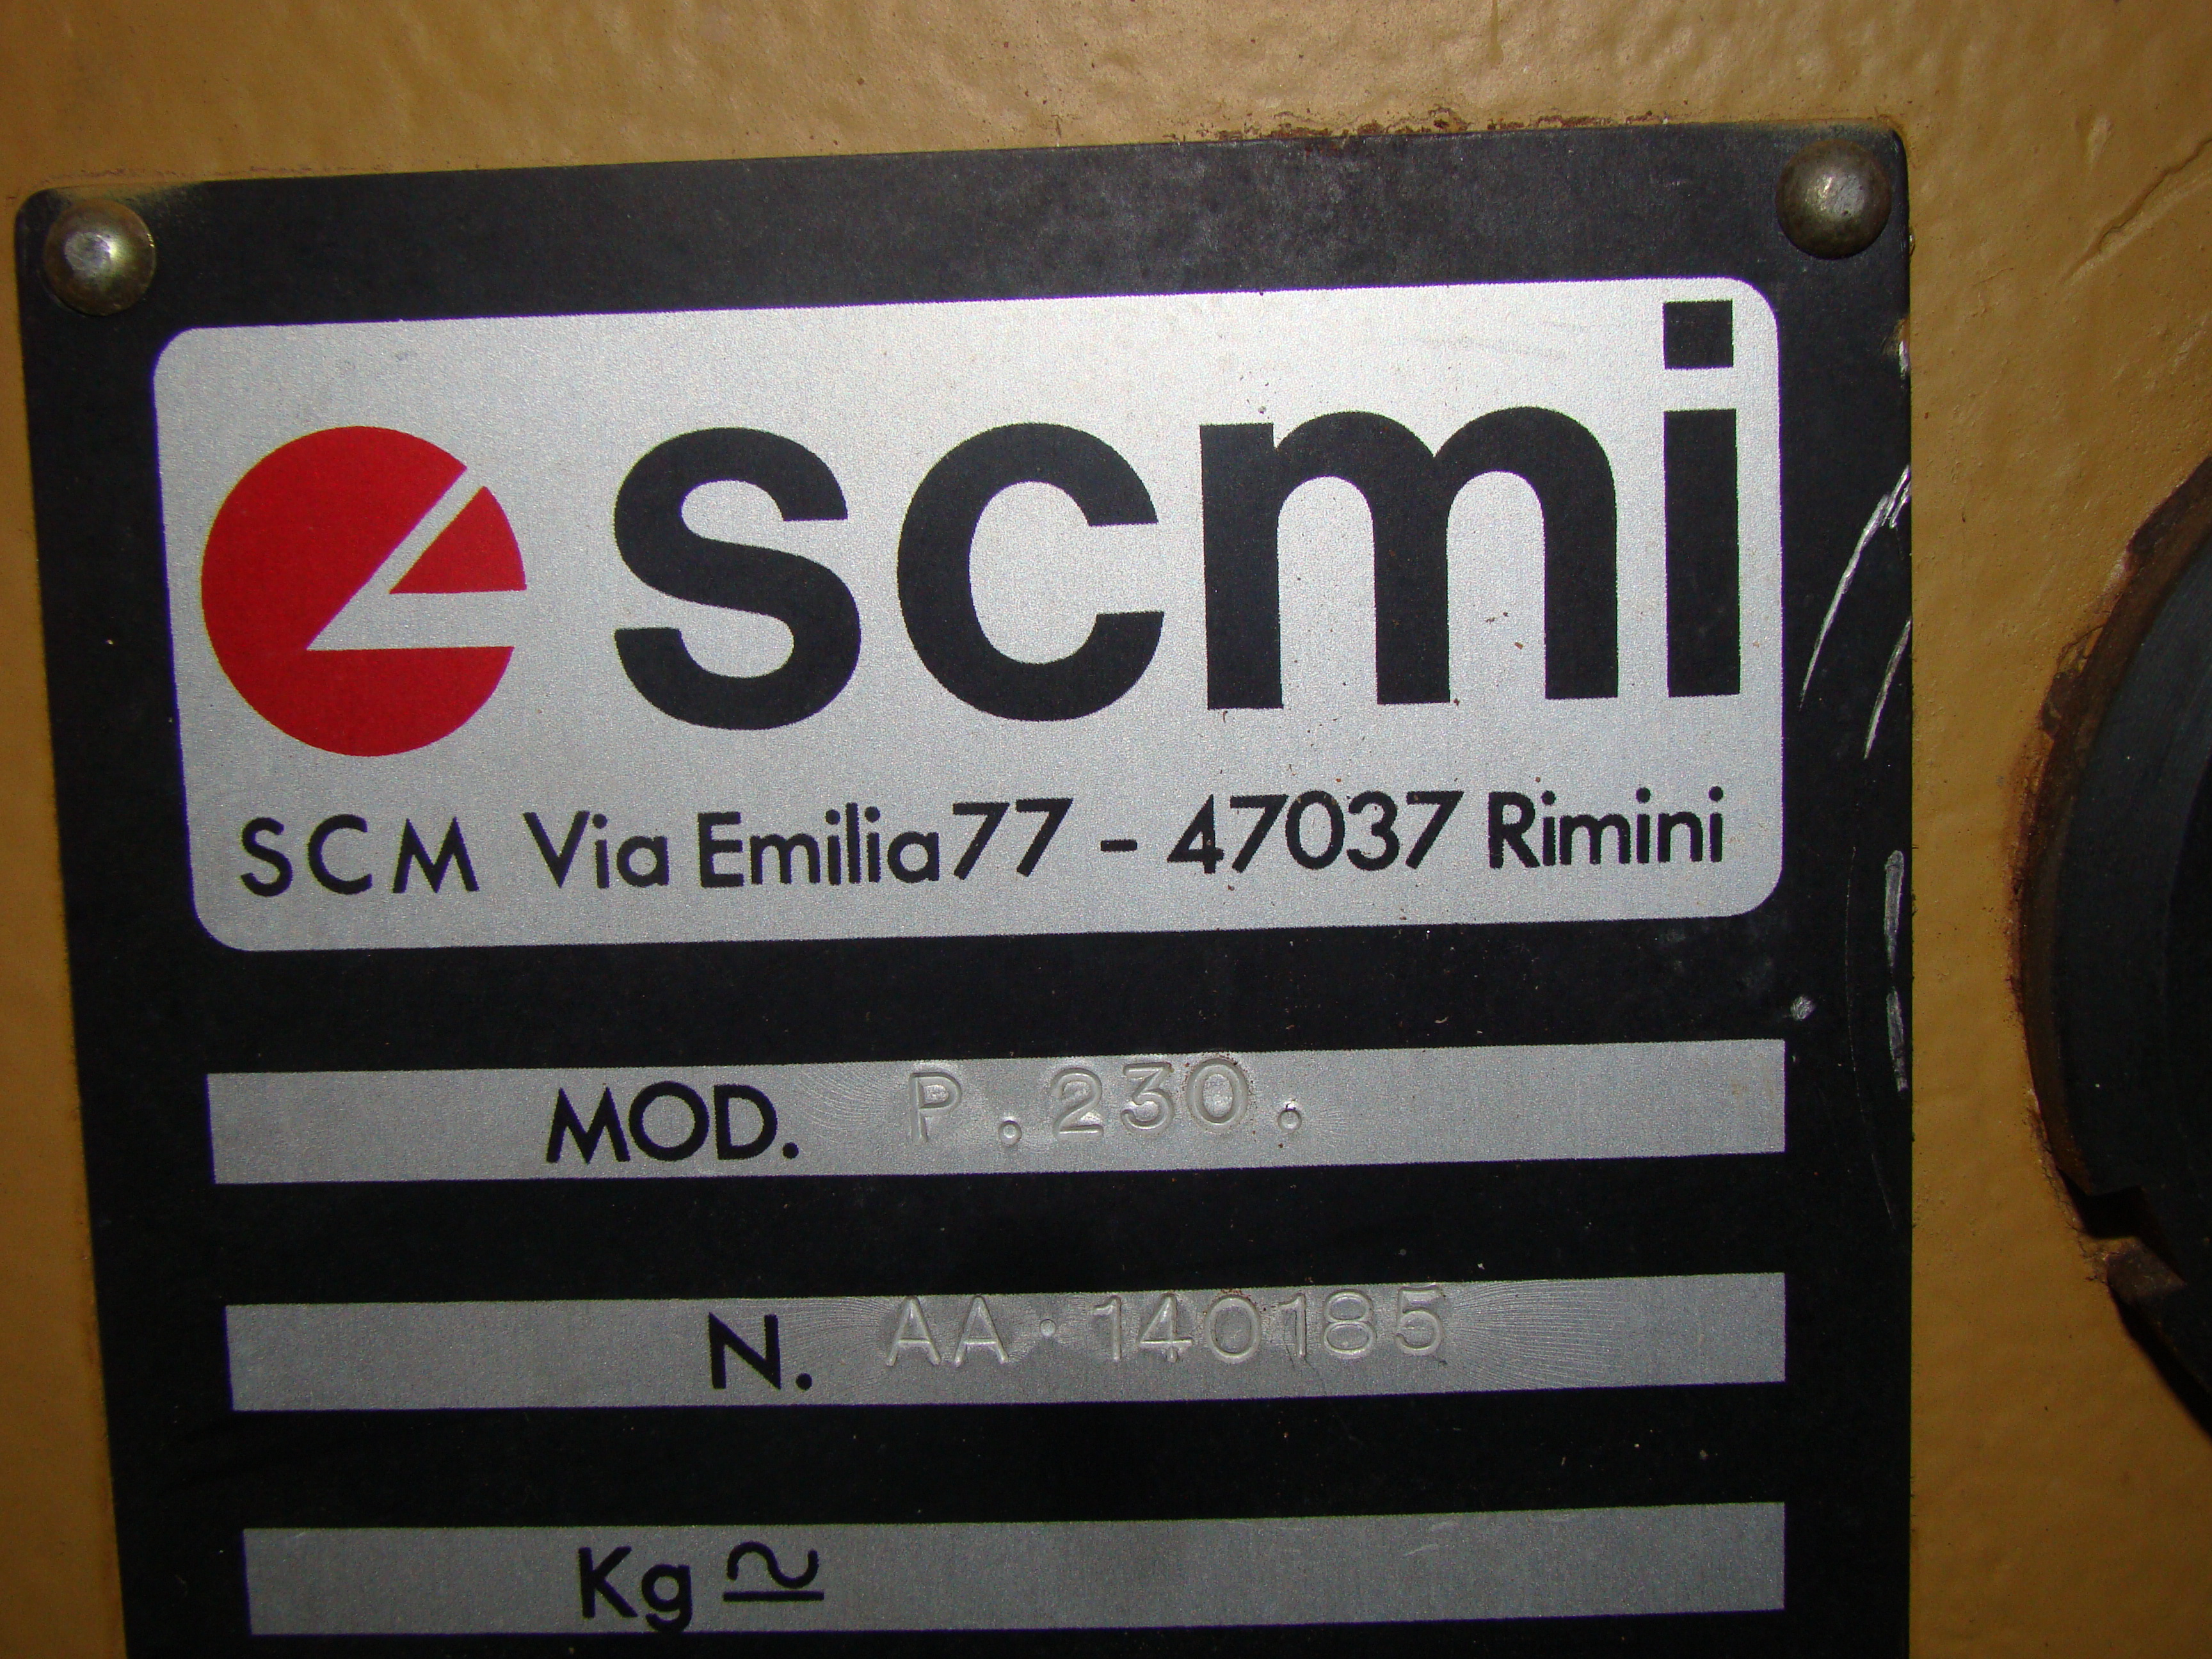 """SCMi 9"""" Wood Moulder, Model: P230 5 Head 6.6HP 220/440 Volts 3Phase - Image 5 of 14"""